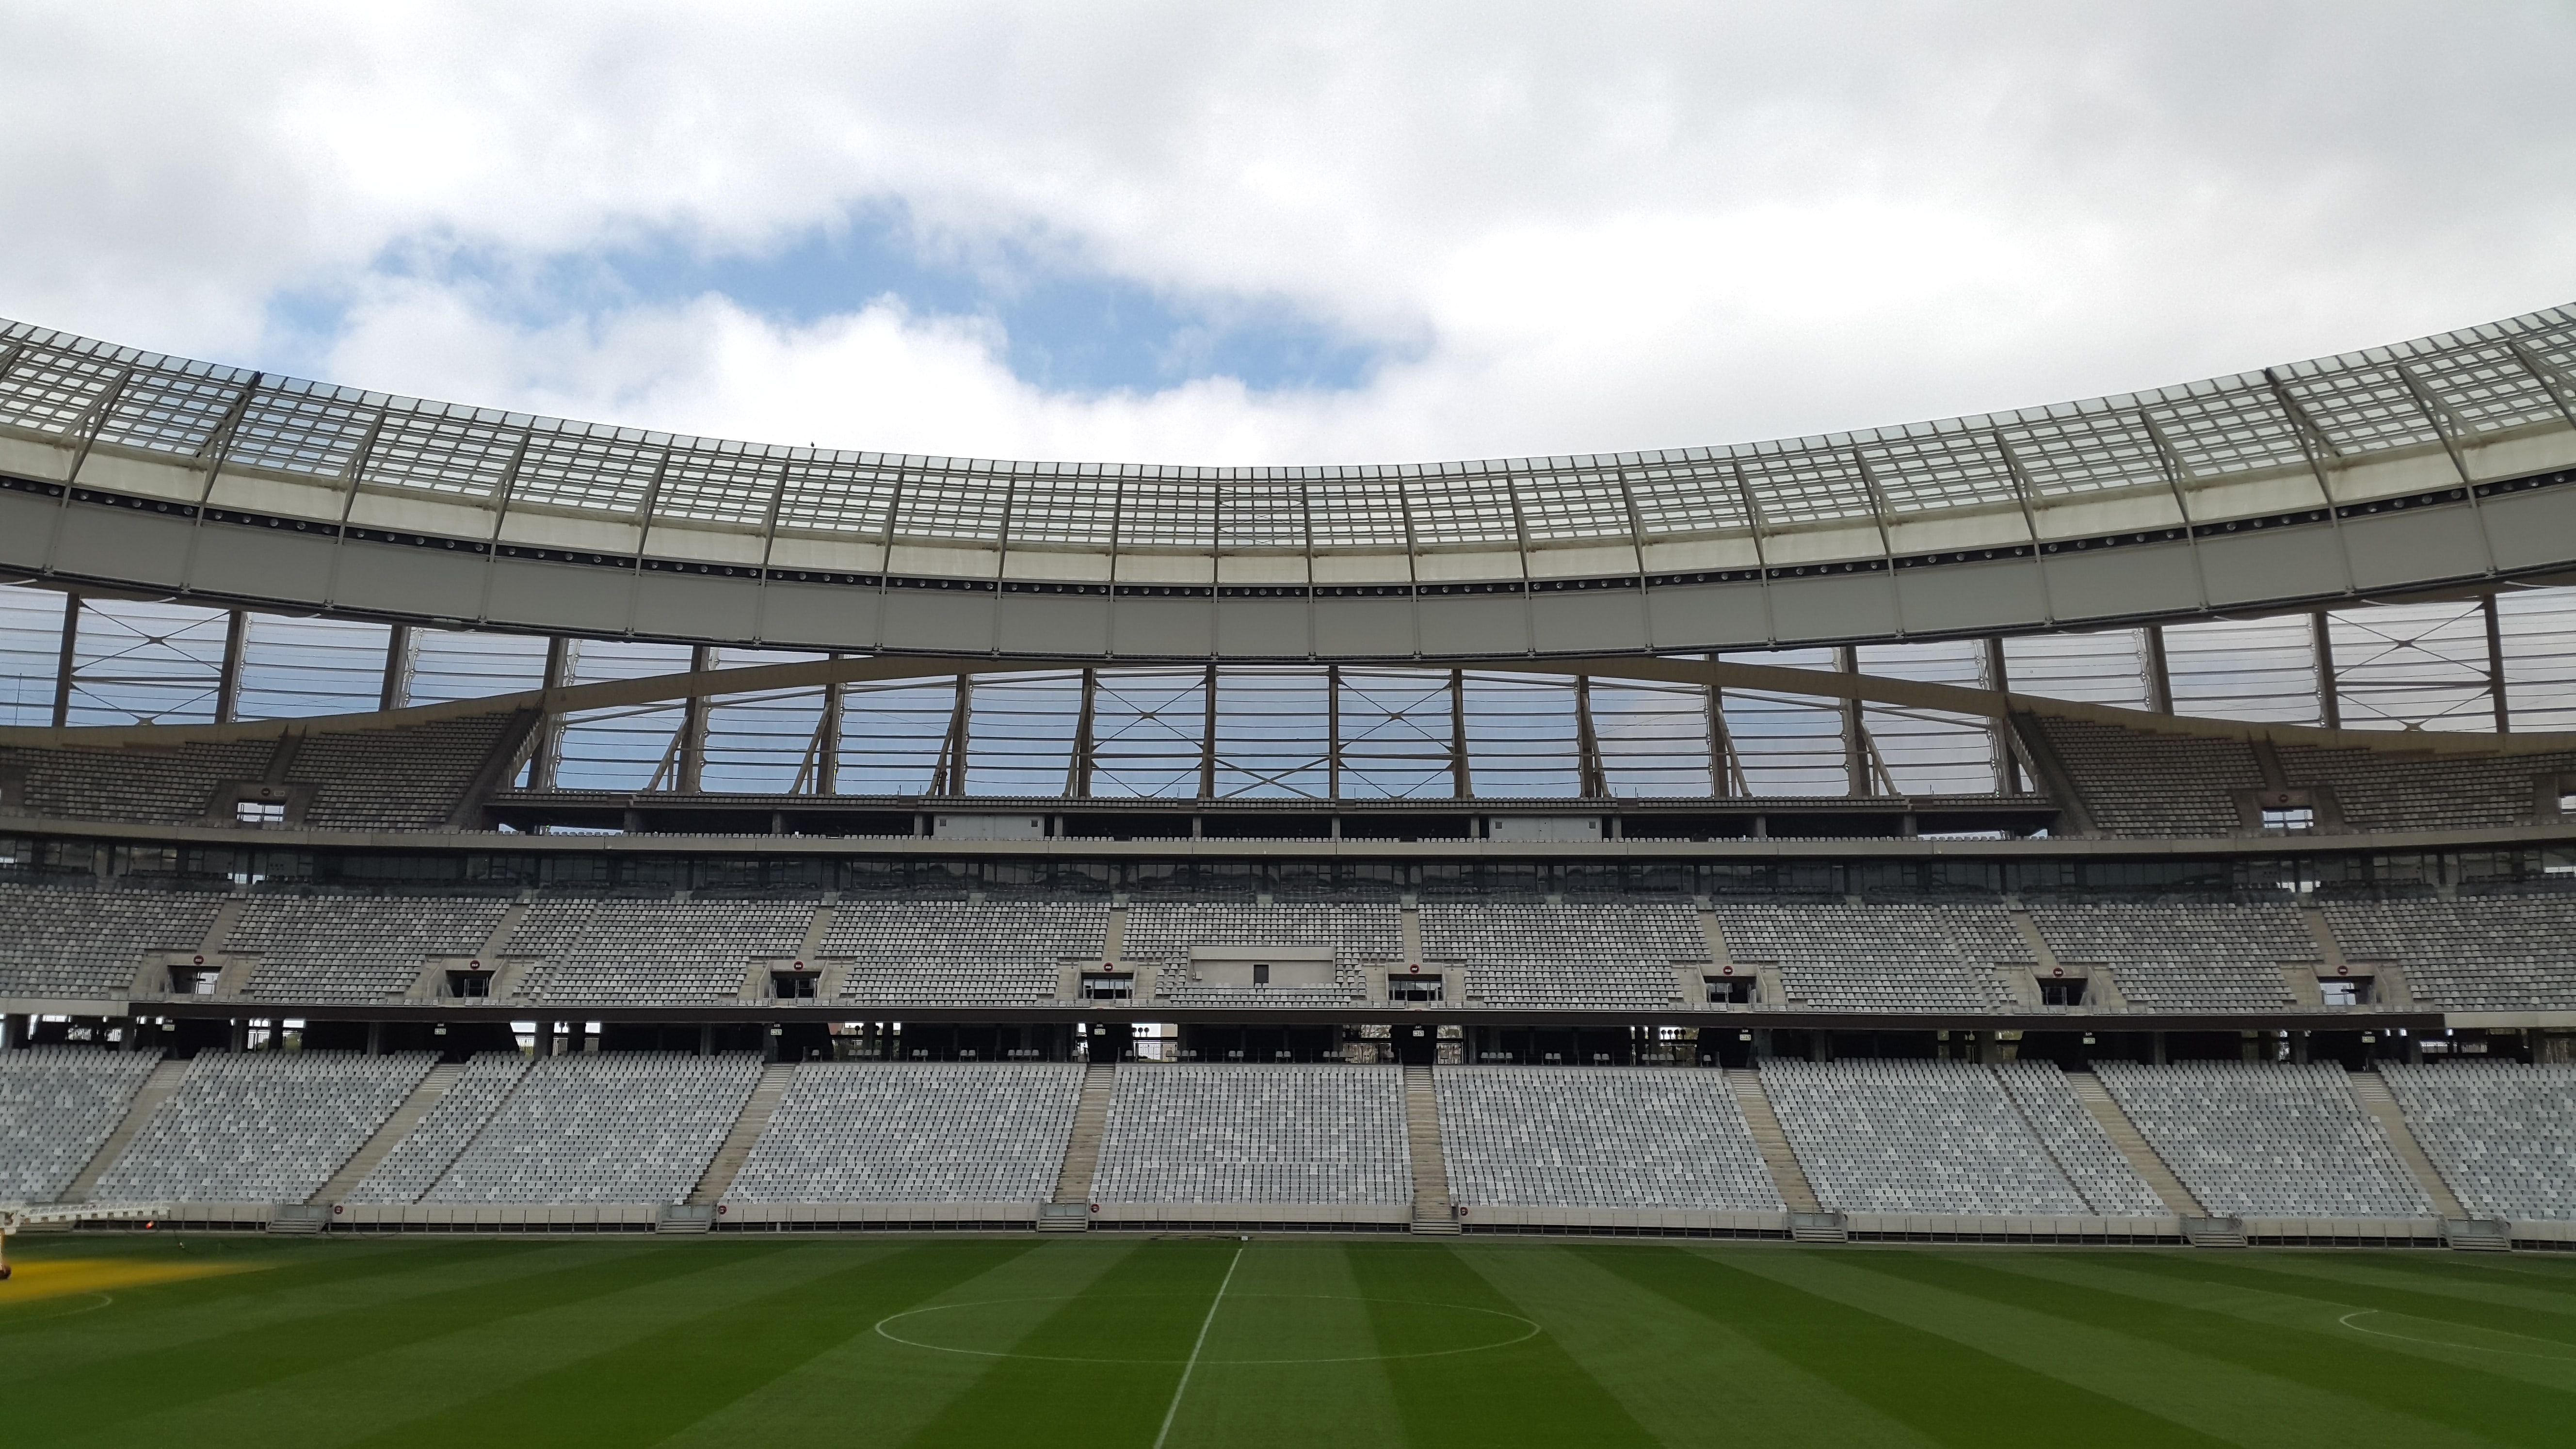 football stadium under cloudy sky